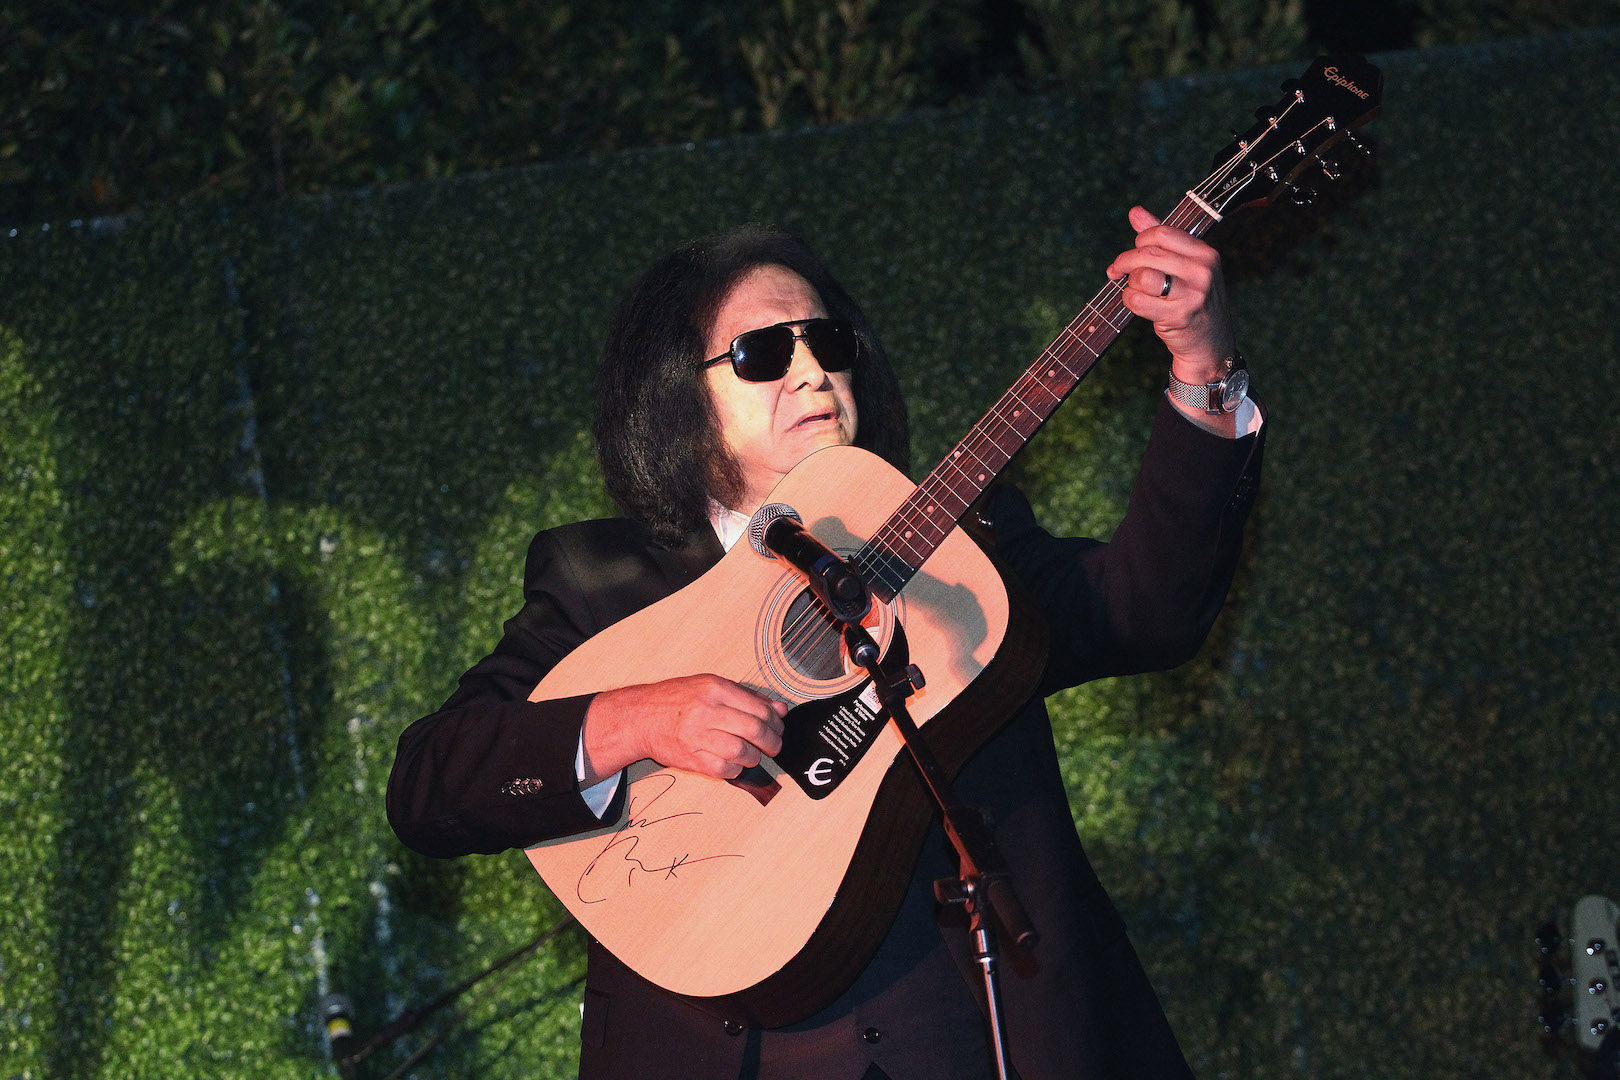 BEVERLY HILLS, CA - NOVEMBER 07:  Musician Gene Simmons performs on stage at the Children Matter.NGO first annual gala on November 7, 2015 in Beverly Hills, California.  (Photo by Tommaso Boddi/Getty Images for The Children Matter.NGO)